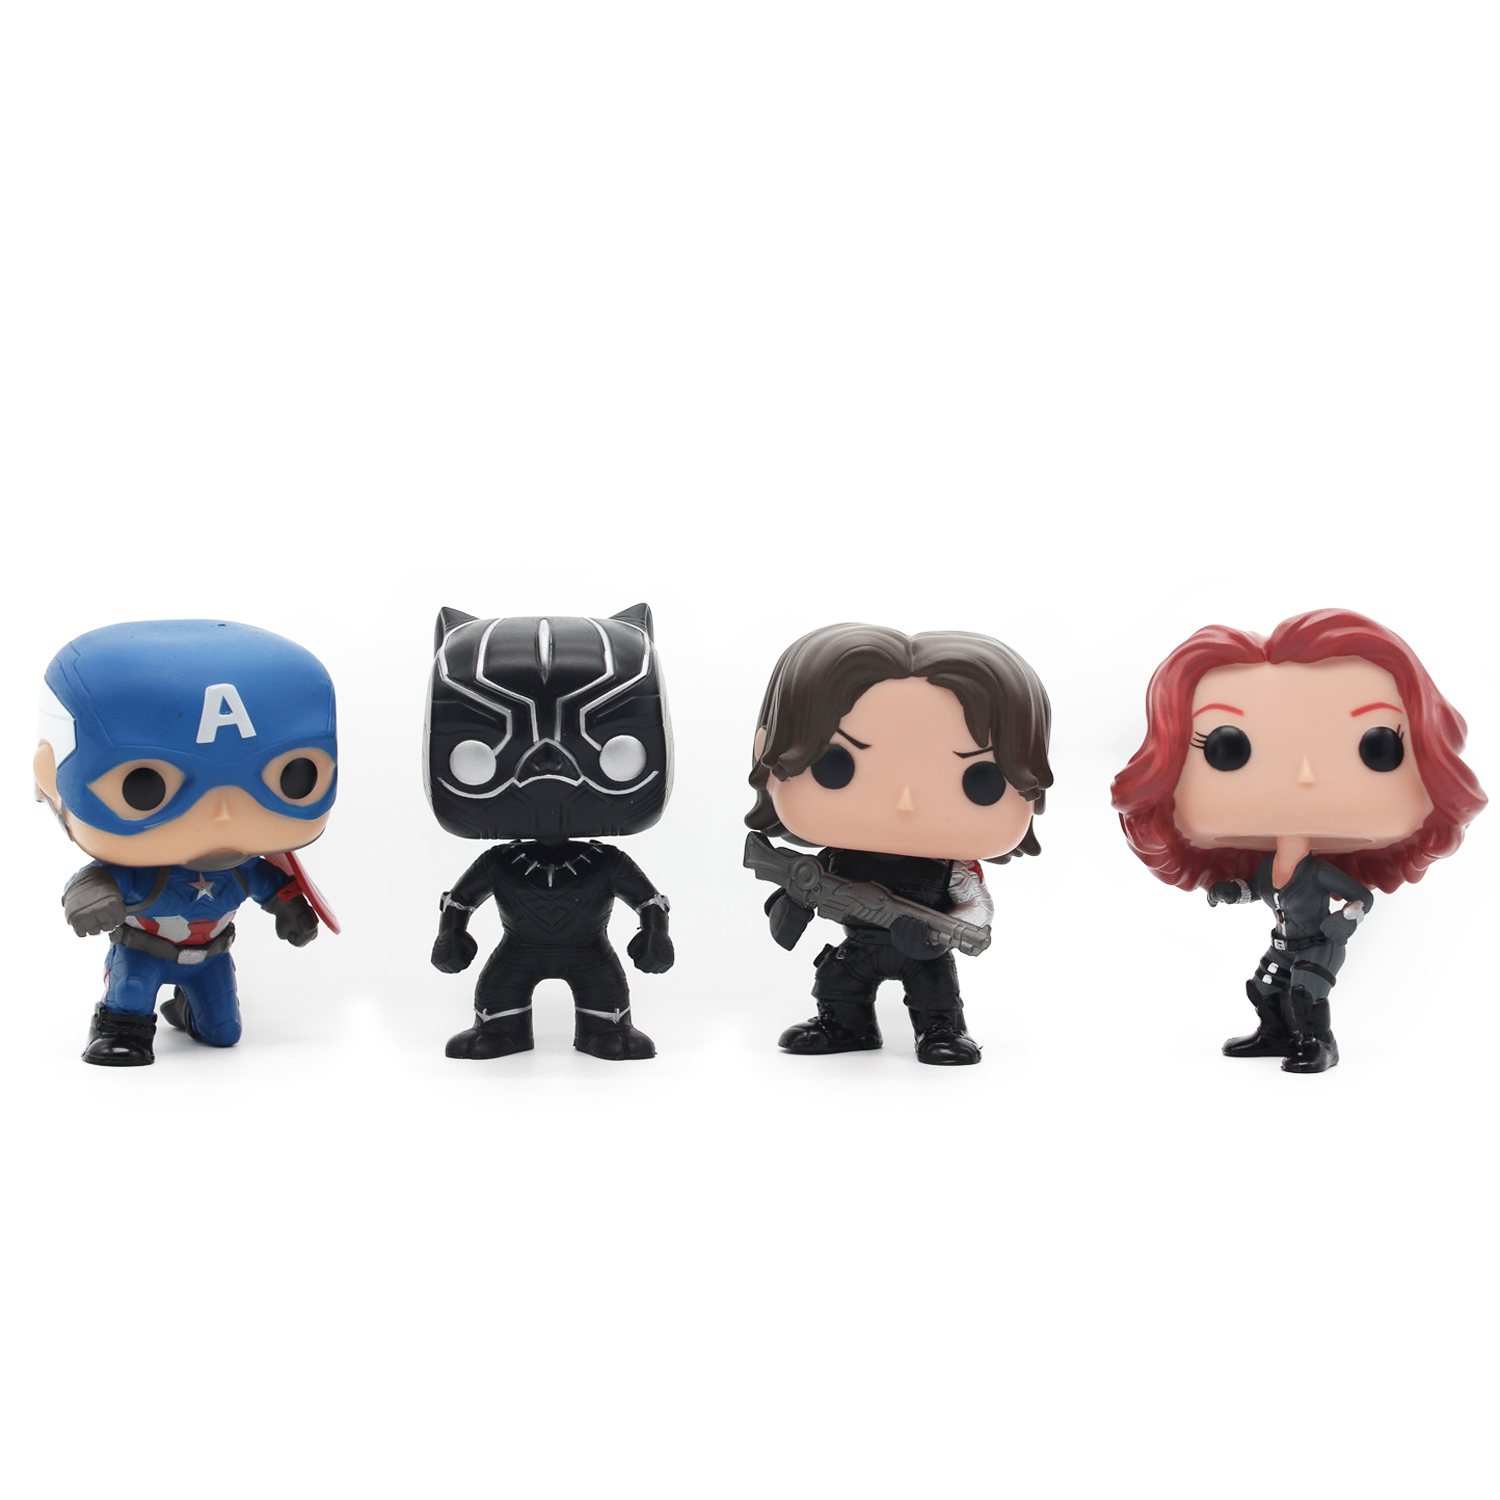 Chanycore Funko Pop Avengers Marvel Captain America Civil War Black Widow Panther Winter Soldier Vinyl PVC Action Figure toy marvel captain america civil war scarlet witch black panther winter soldier falcon pvc action figure collectible model toy